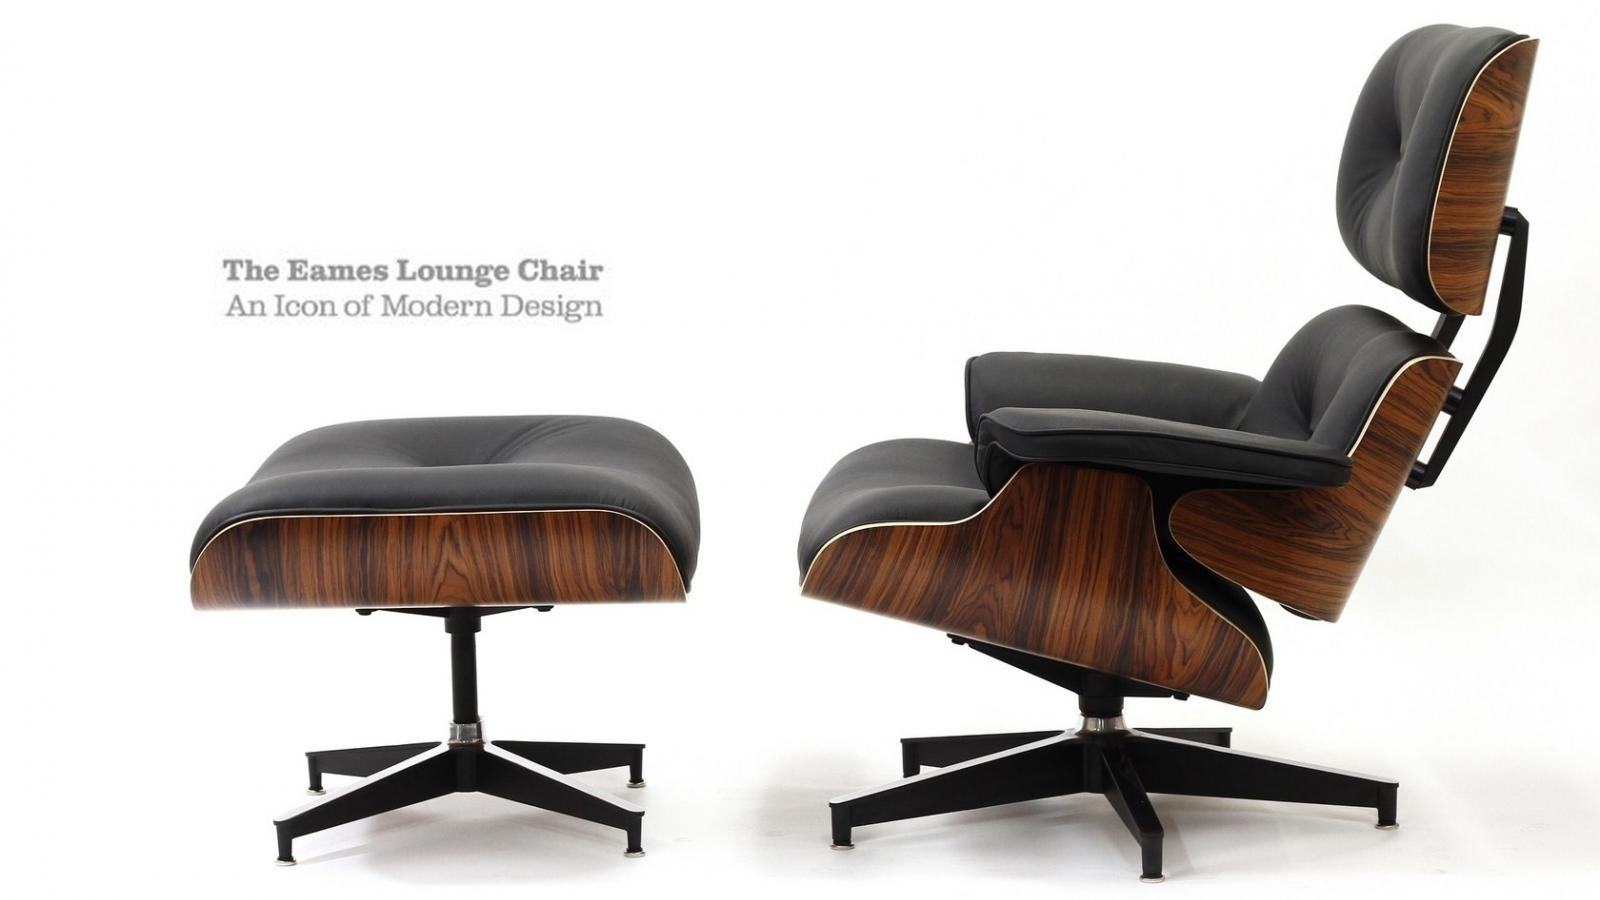 The Eames Lounge Chair: An Icon of Modern Design - Book